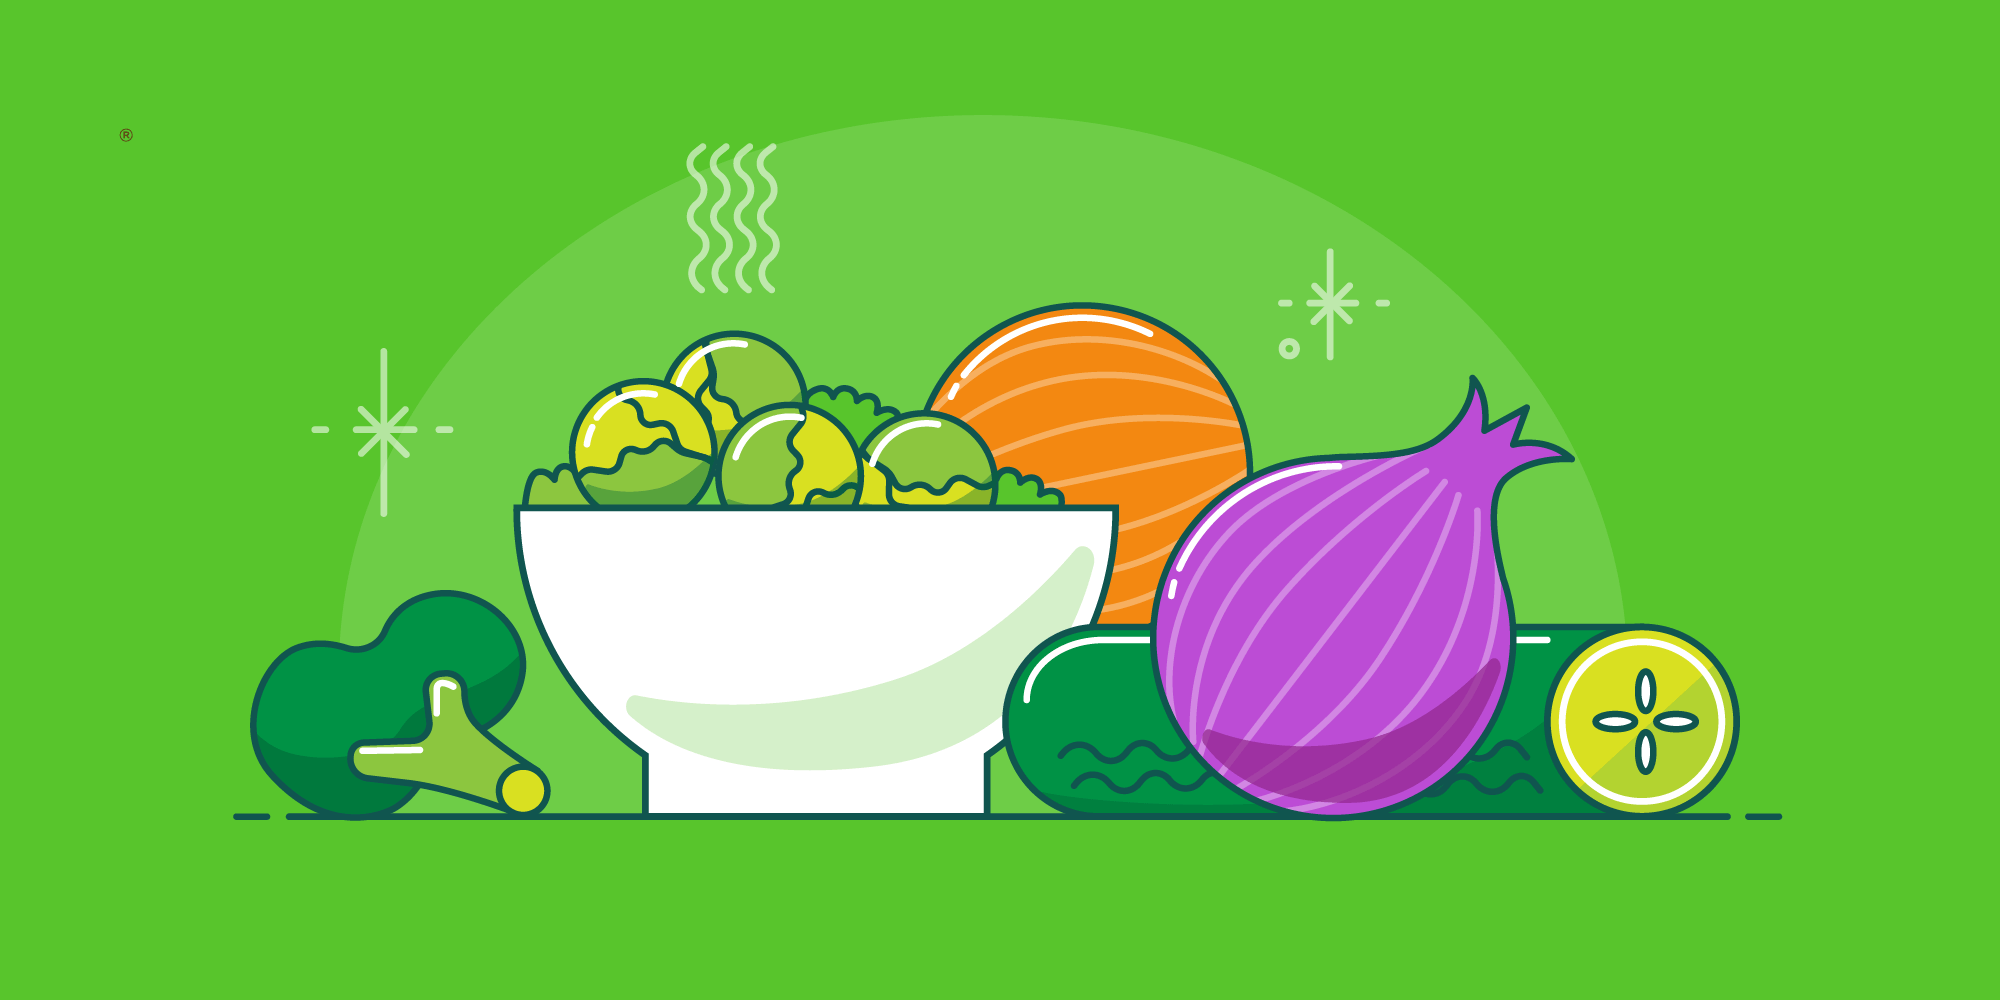 Illustrations of vegetables on a table to help kids eat veggies